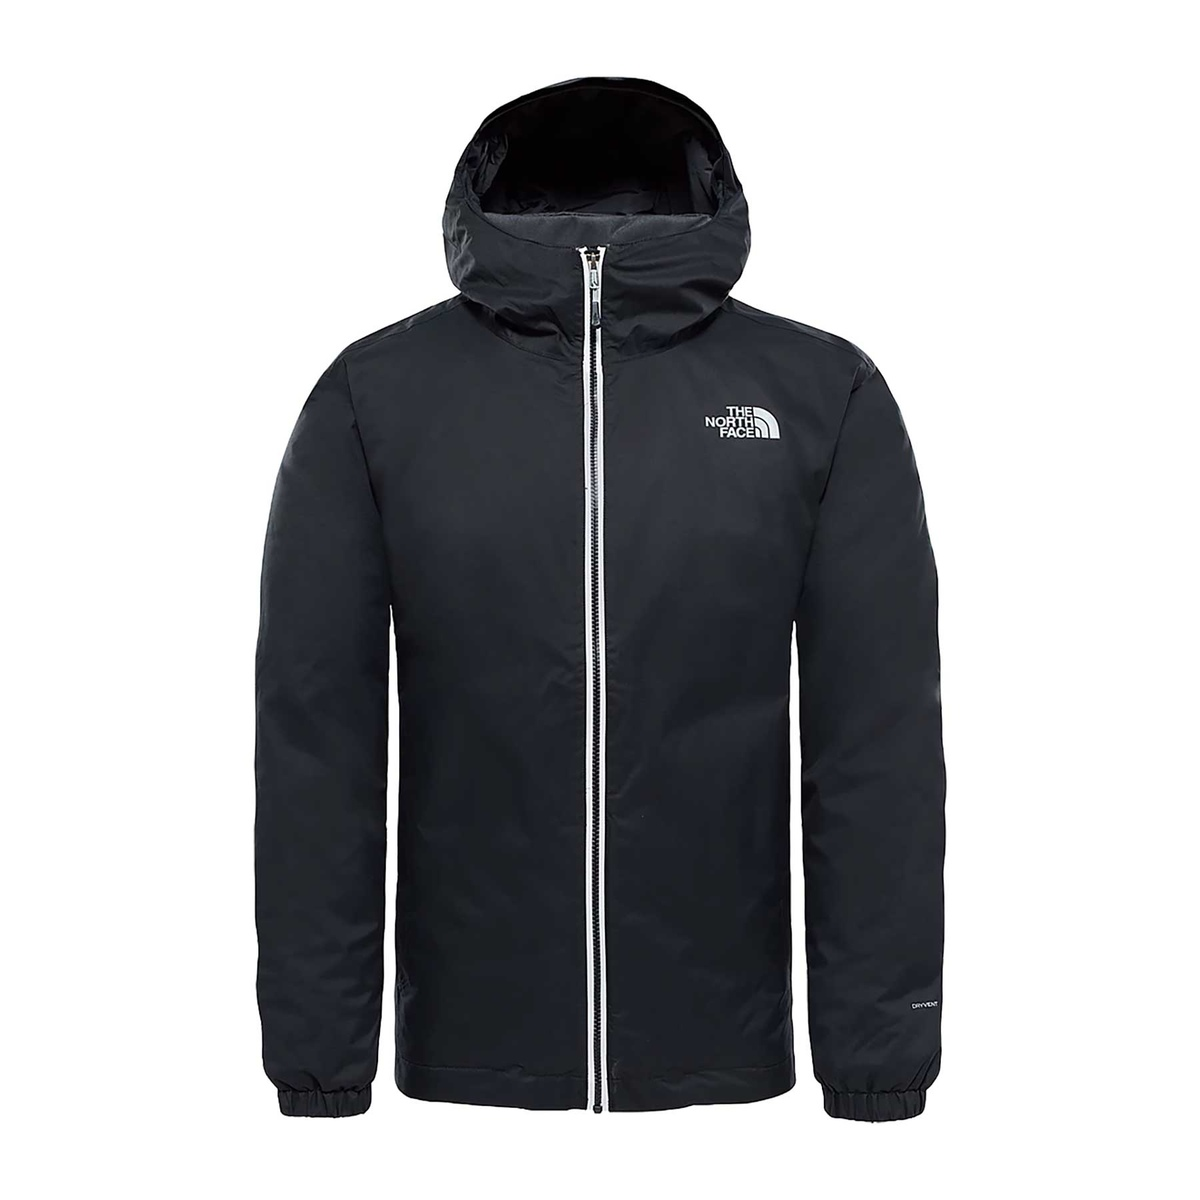 Prezzi The north face GIACCA QUEST INSULATED